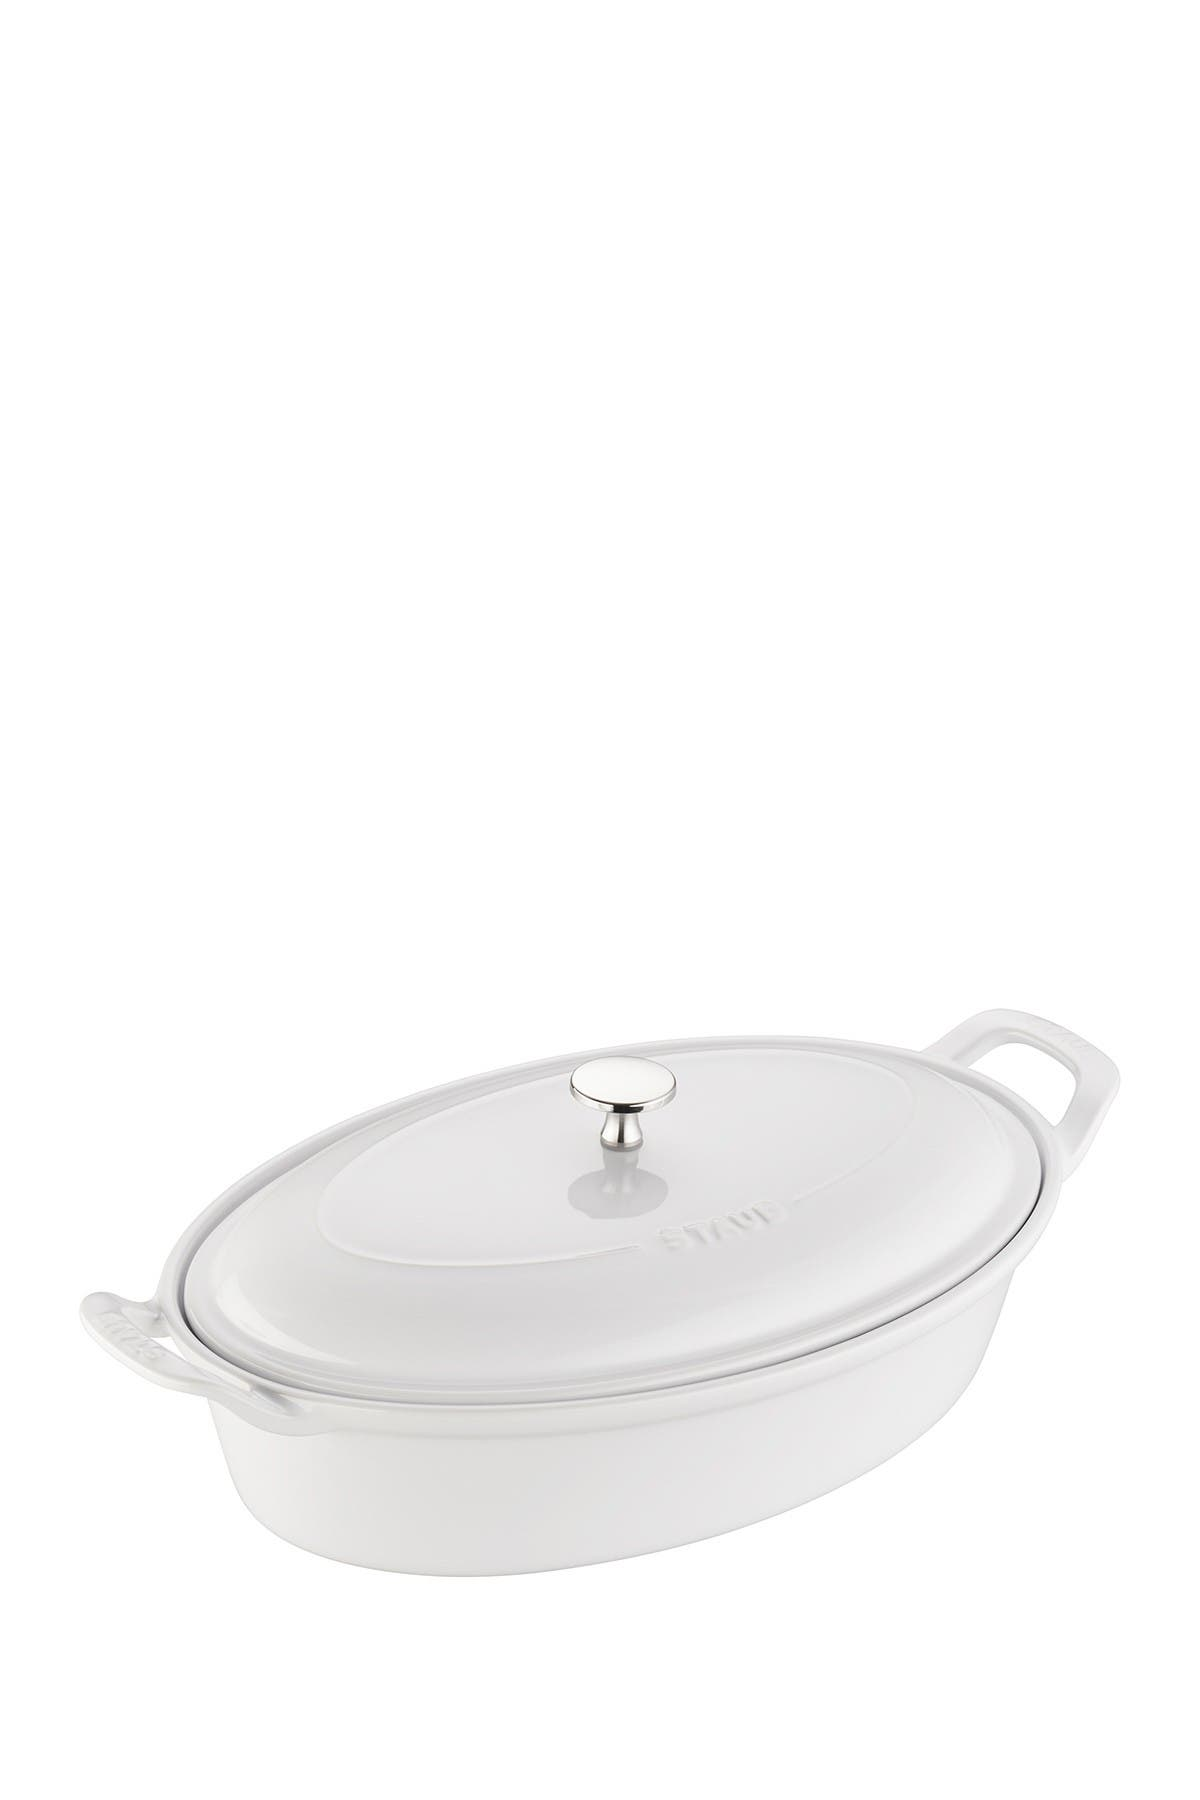 Image of Staub Ceramic 14-inch Oval Covered Baking Dish - White